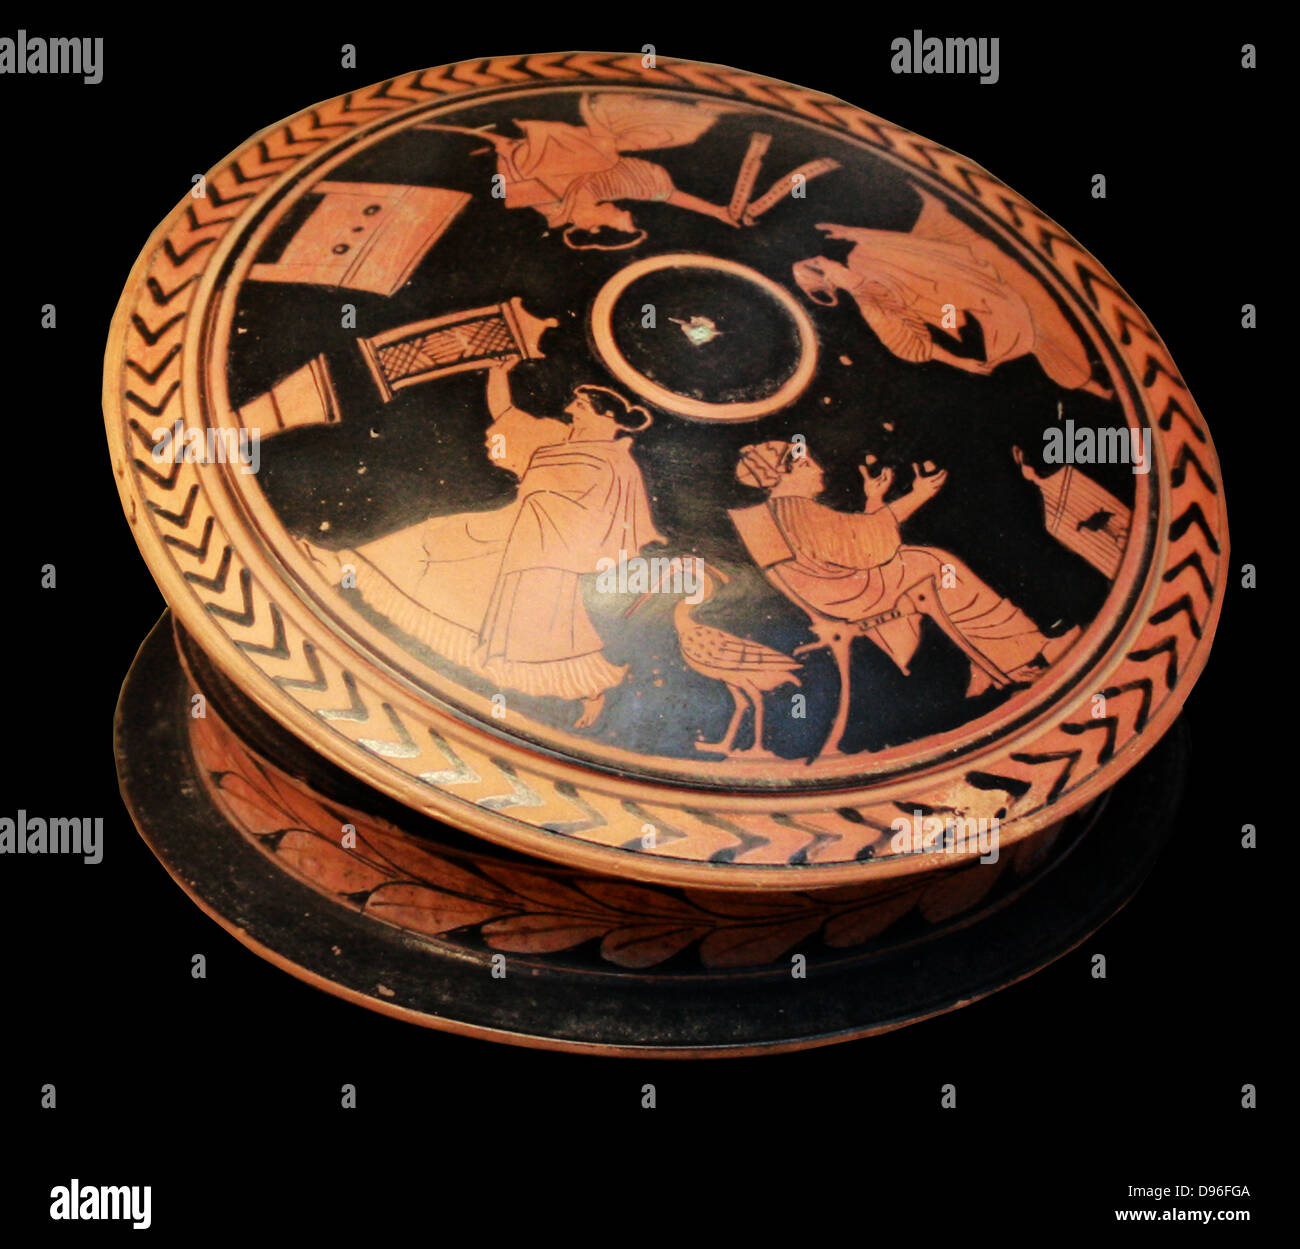 Greek 'pyxis' or trinket-box adorned with red figures. Showing a woman holding a 'sprang' frame. - Stock Image